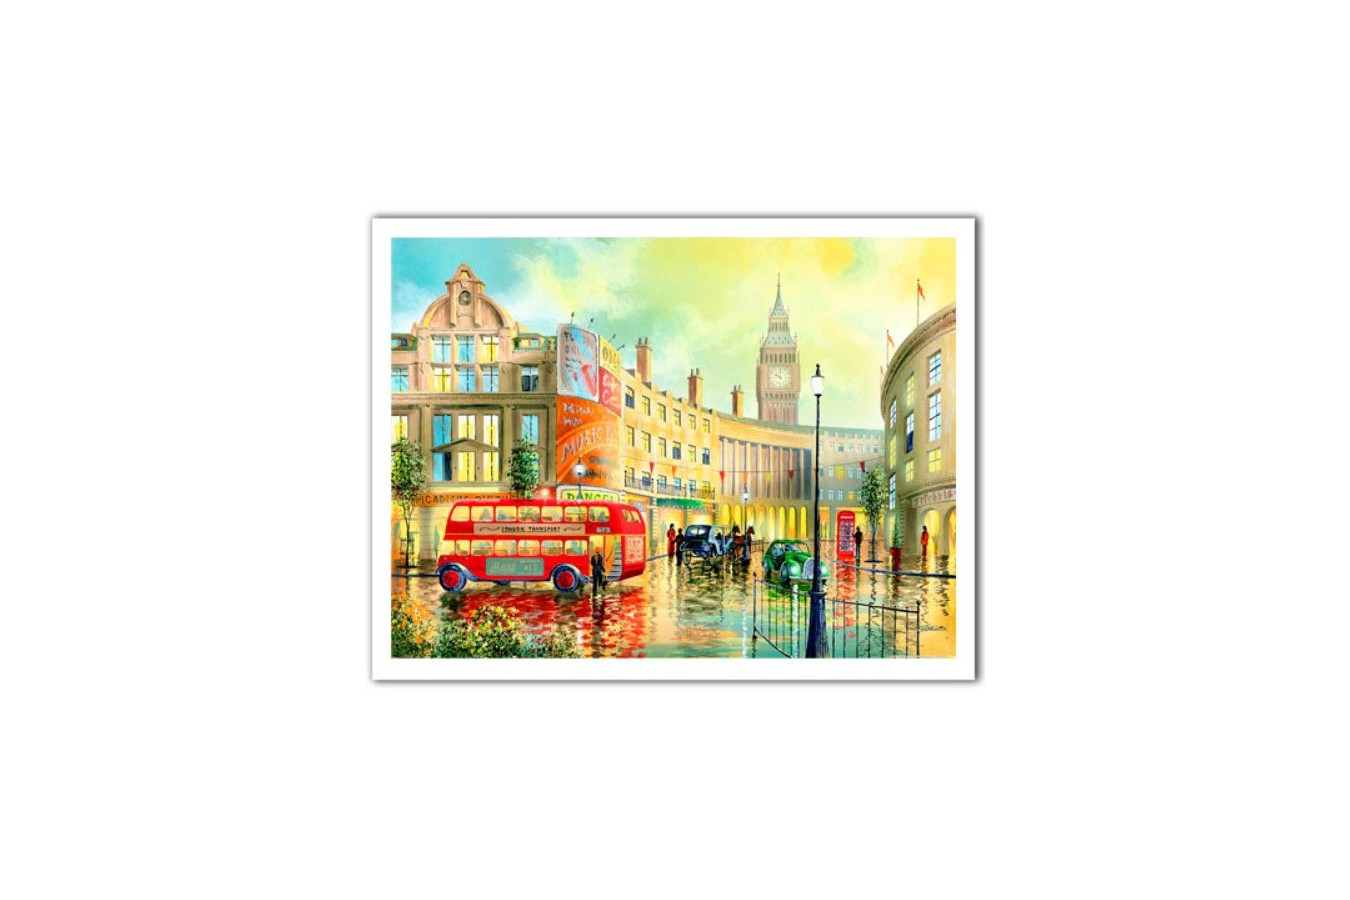 Puzzle din plastic Pintoo - Ken Shotwell: Morning in London, 1200 piese (H1996) imagine